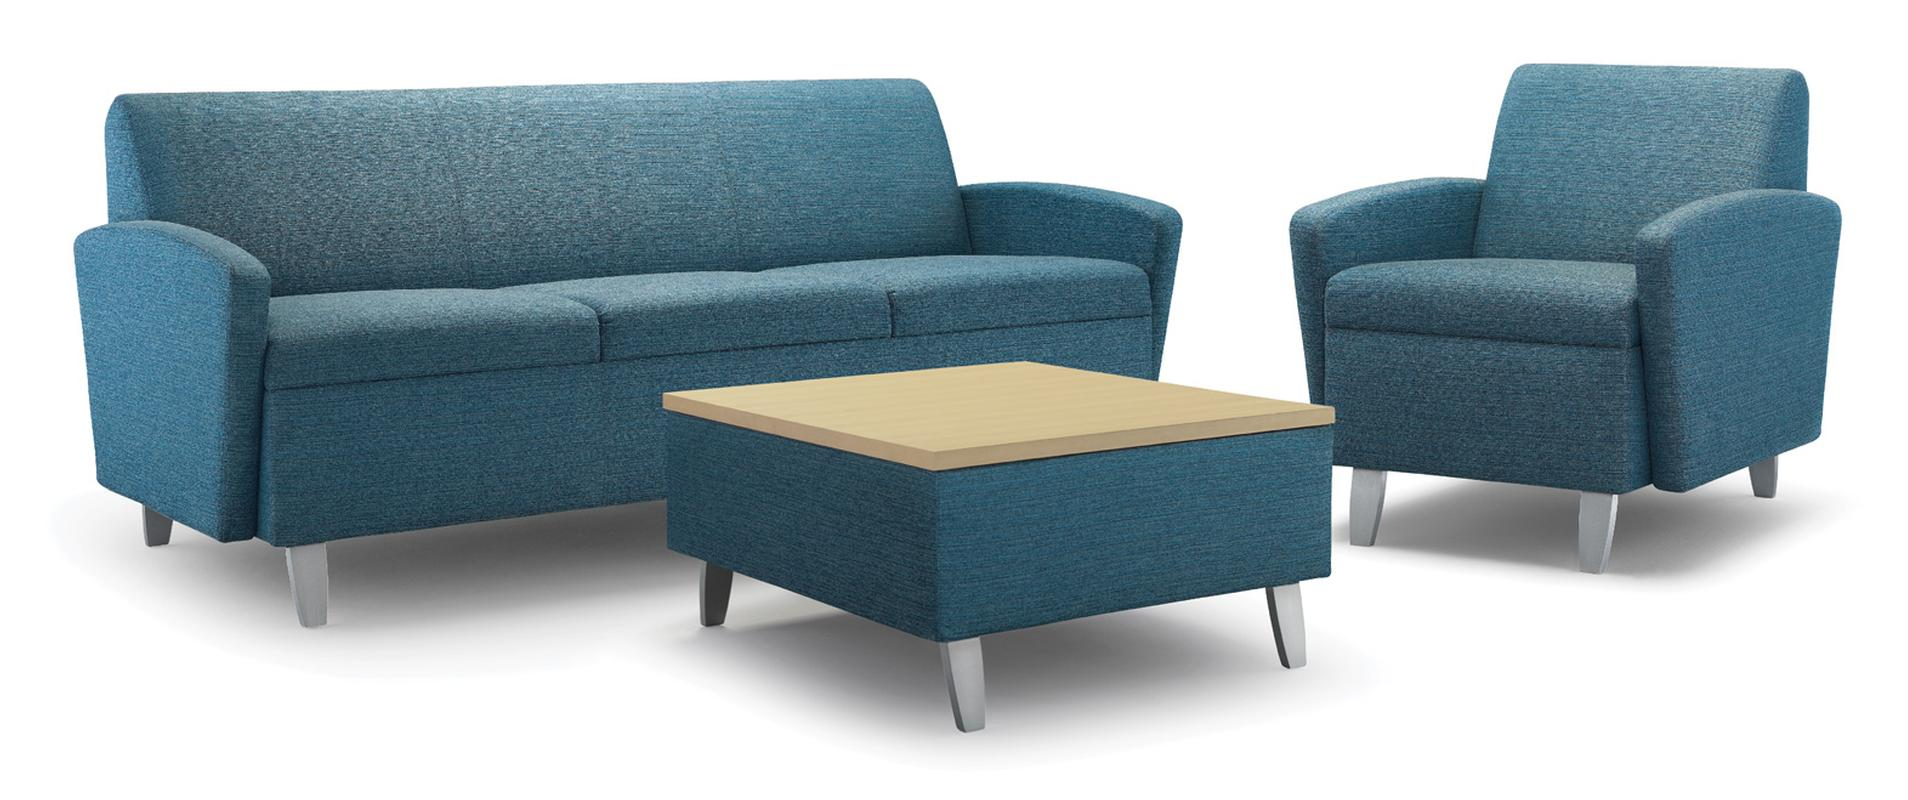 Facelift Serpentine Lounge Seating